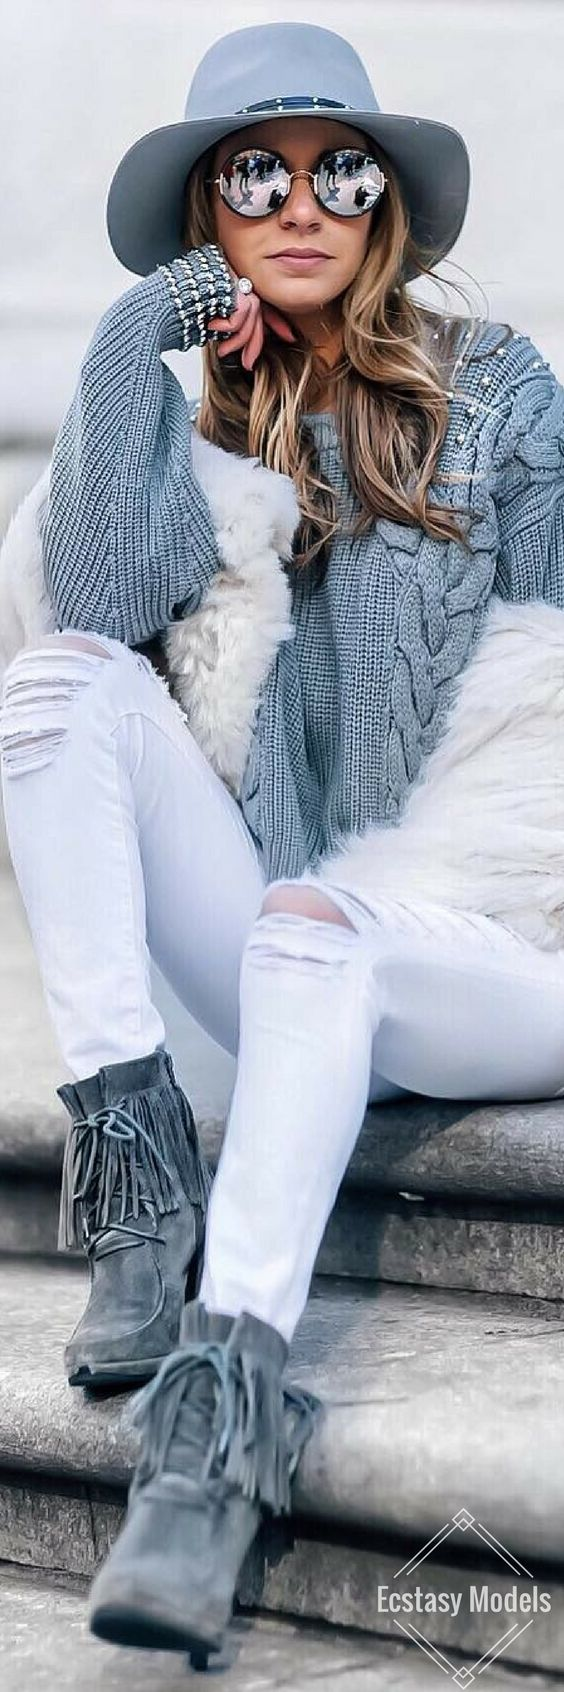 Artic Christmas • Fashion Look by Marni Danielle Harvey • Street CHIC • ❤️ Curated by Babz™ ✿ιиѕριяαтισи❀ #abbigliamento